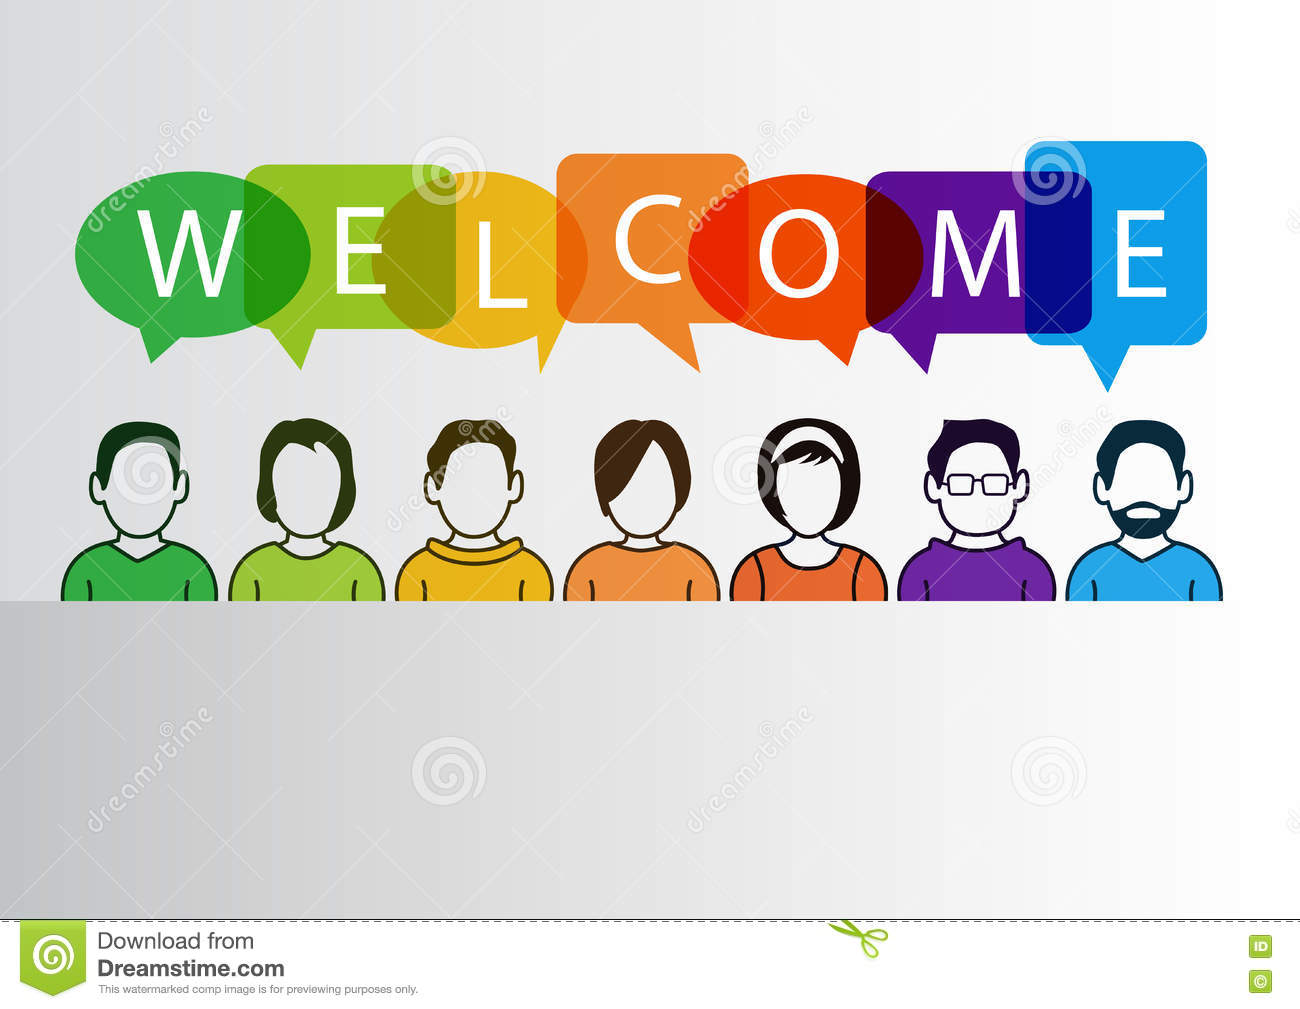 colorful-welcome-background-simplified-cartoon-characters-72063171.jpg